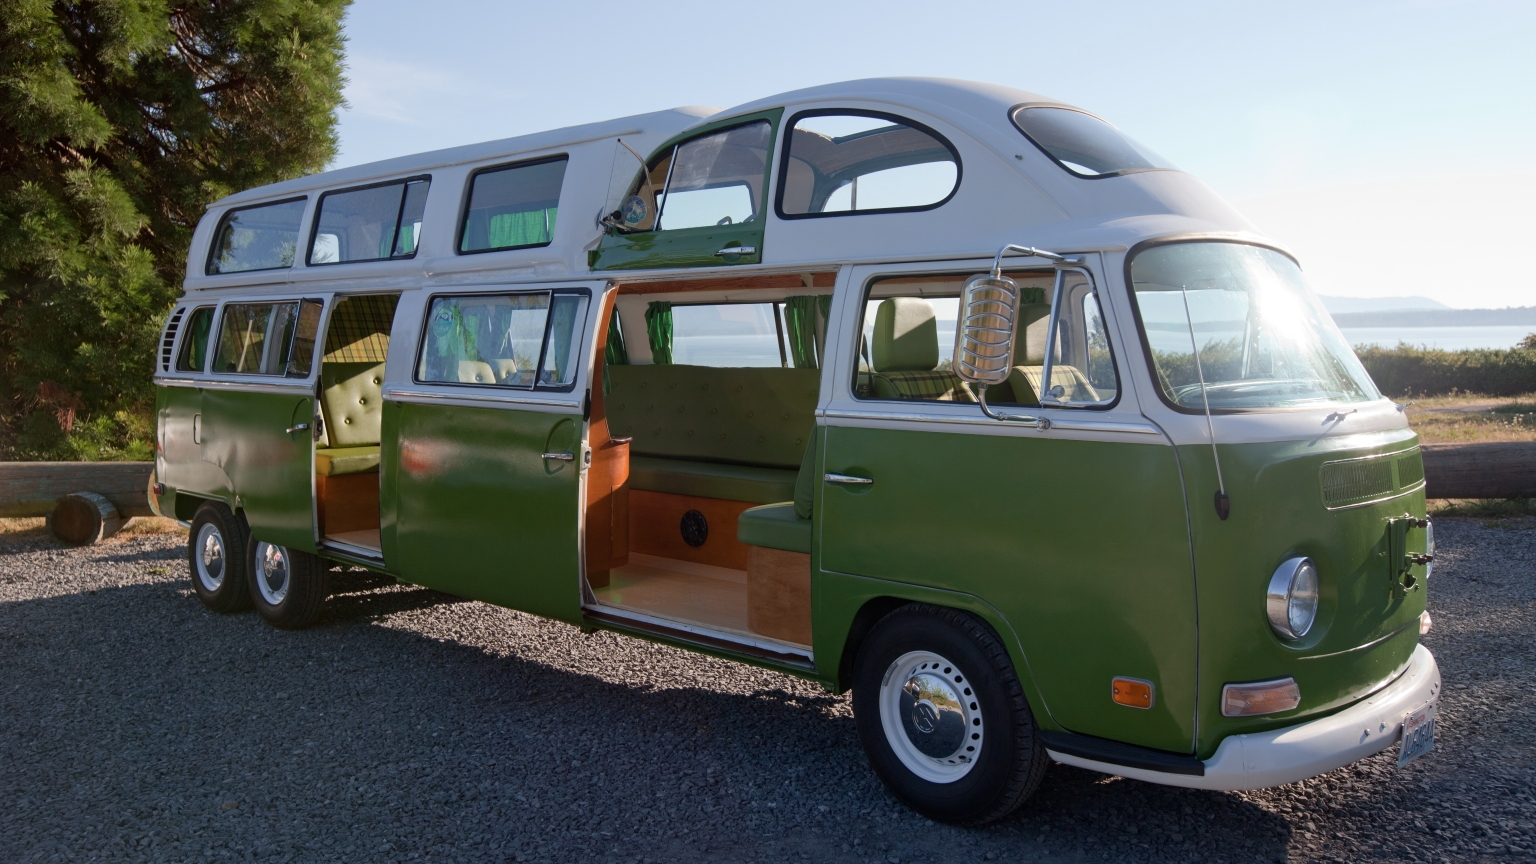 Bus stretch limo camper pictures pictures to pin on pinterest